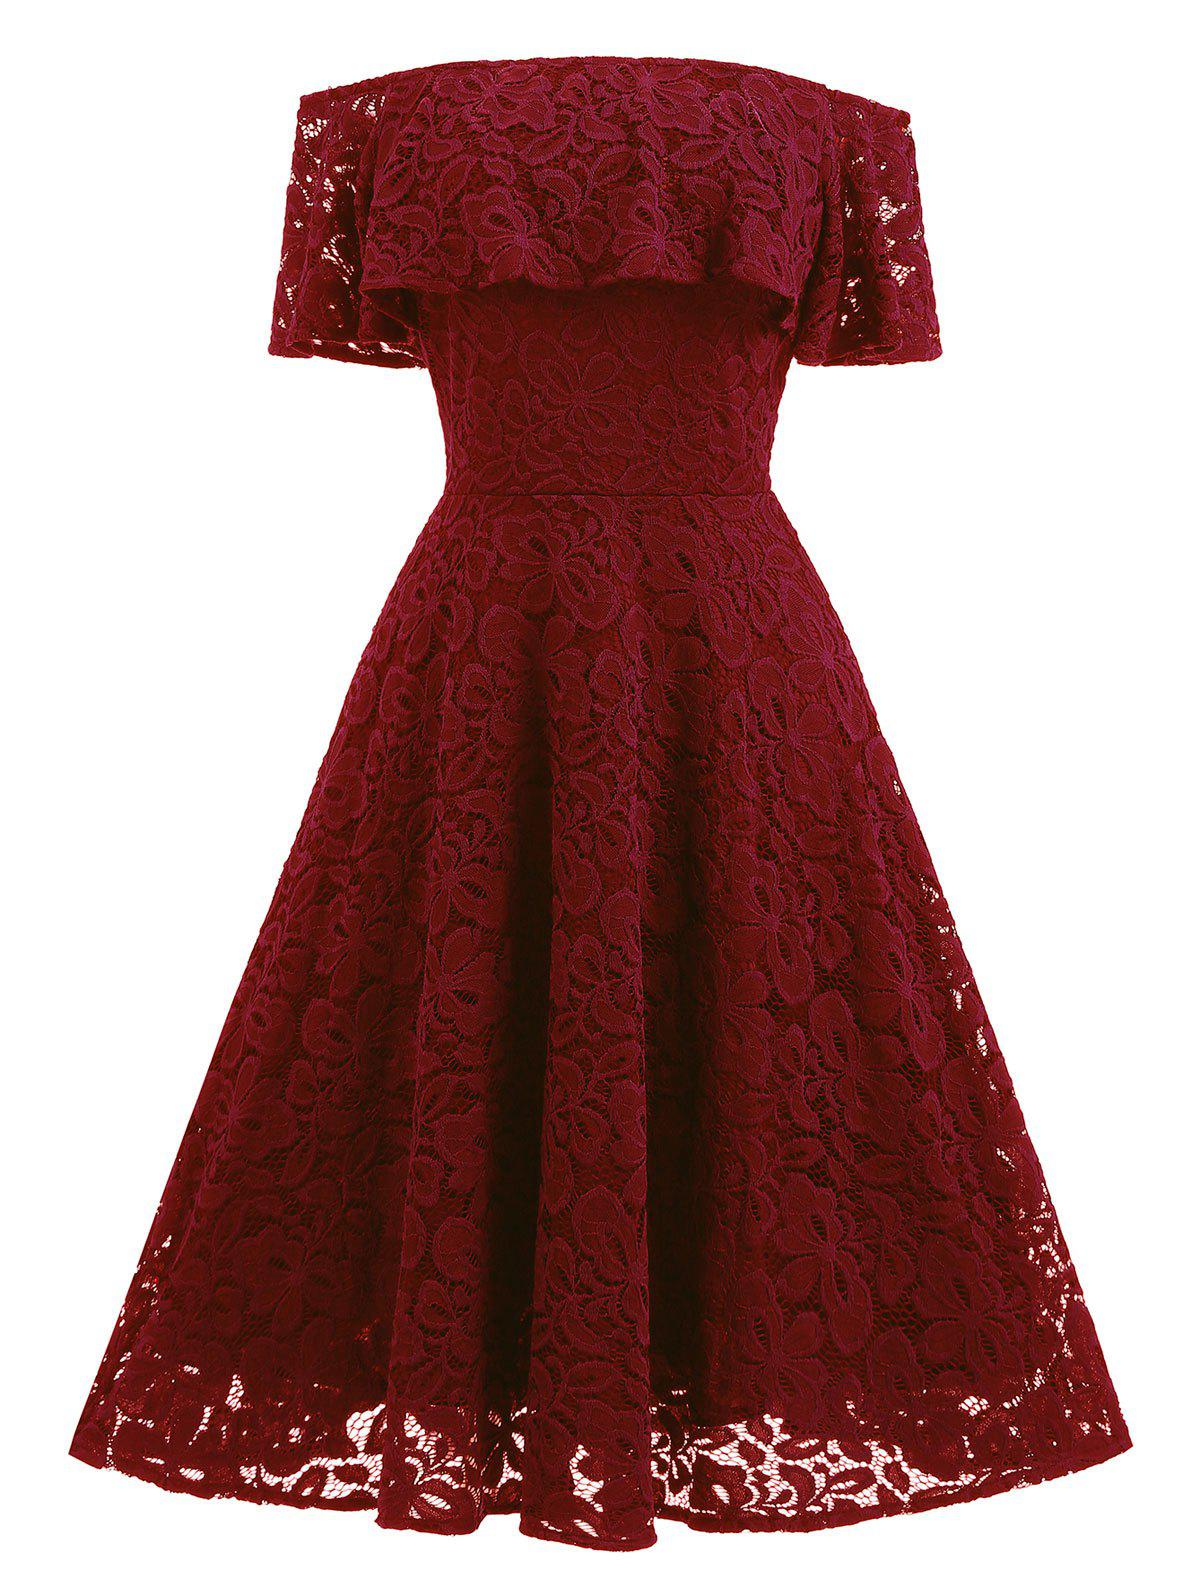 Ruffle Off Shoulder Vintage Lace A Line Dress - WINE RED XL